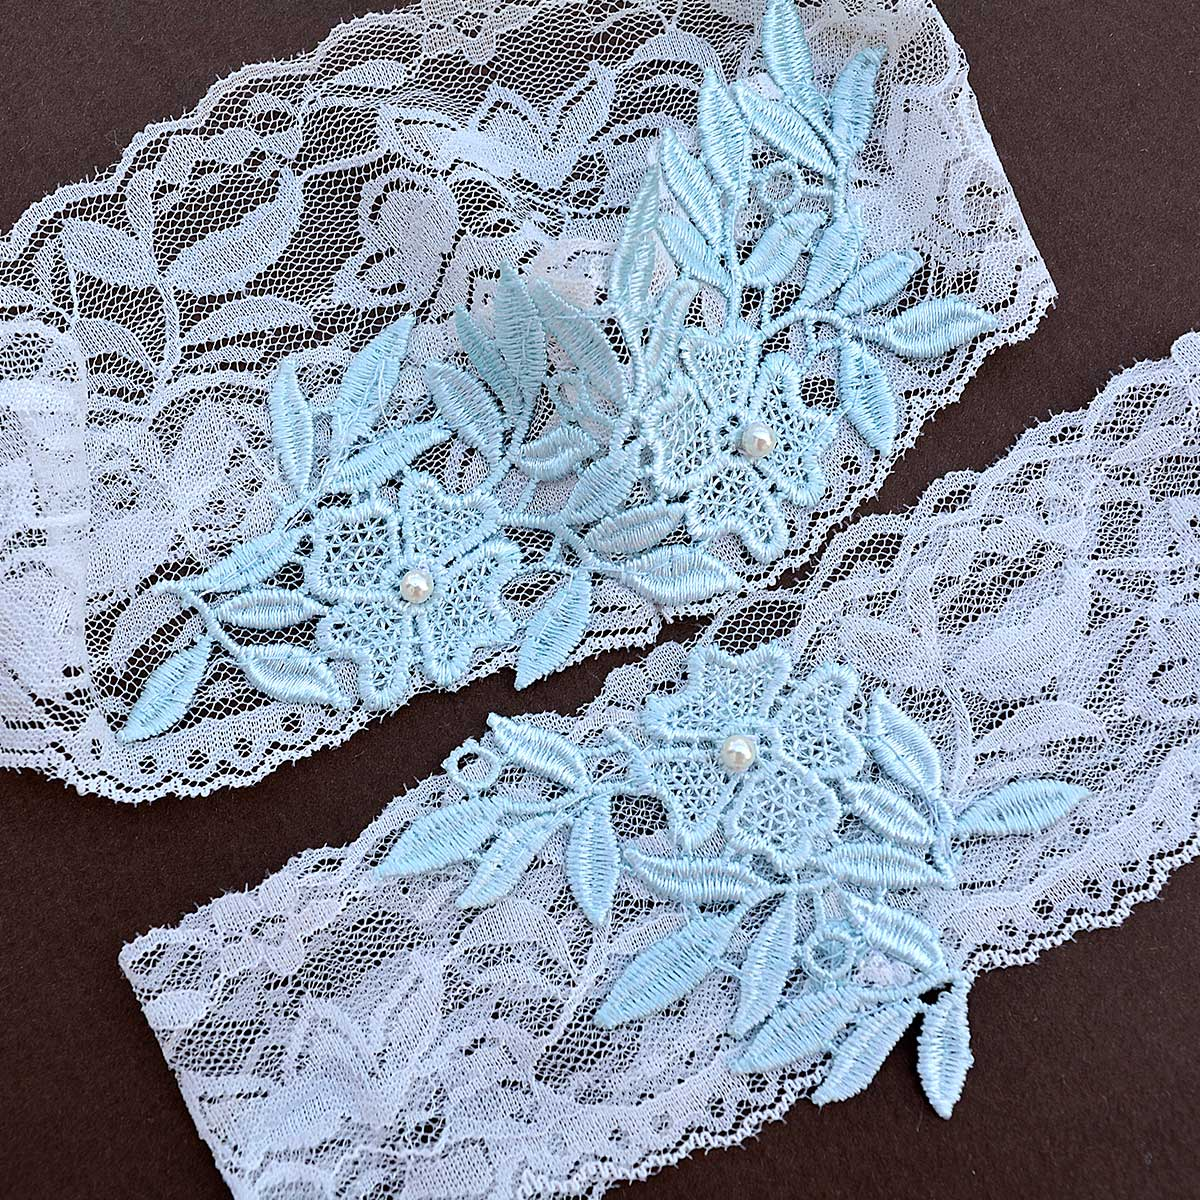 Ivory Bridal Garter With Pale Blue Applique Lace & Ivory Pearls - Wedding Garter - SuzannaM Designs